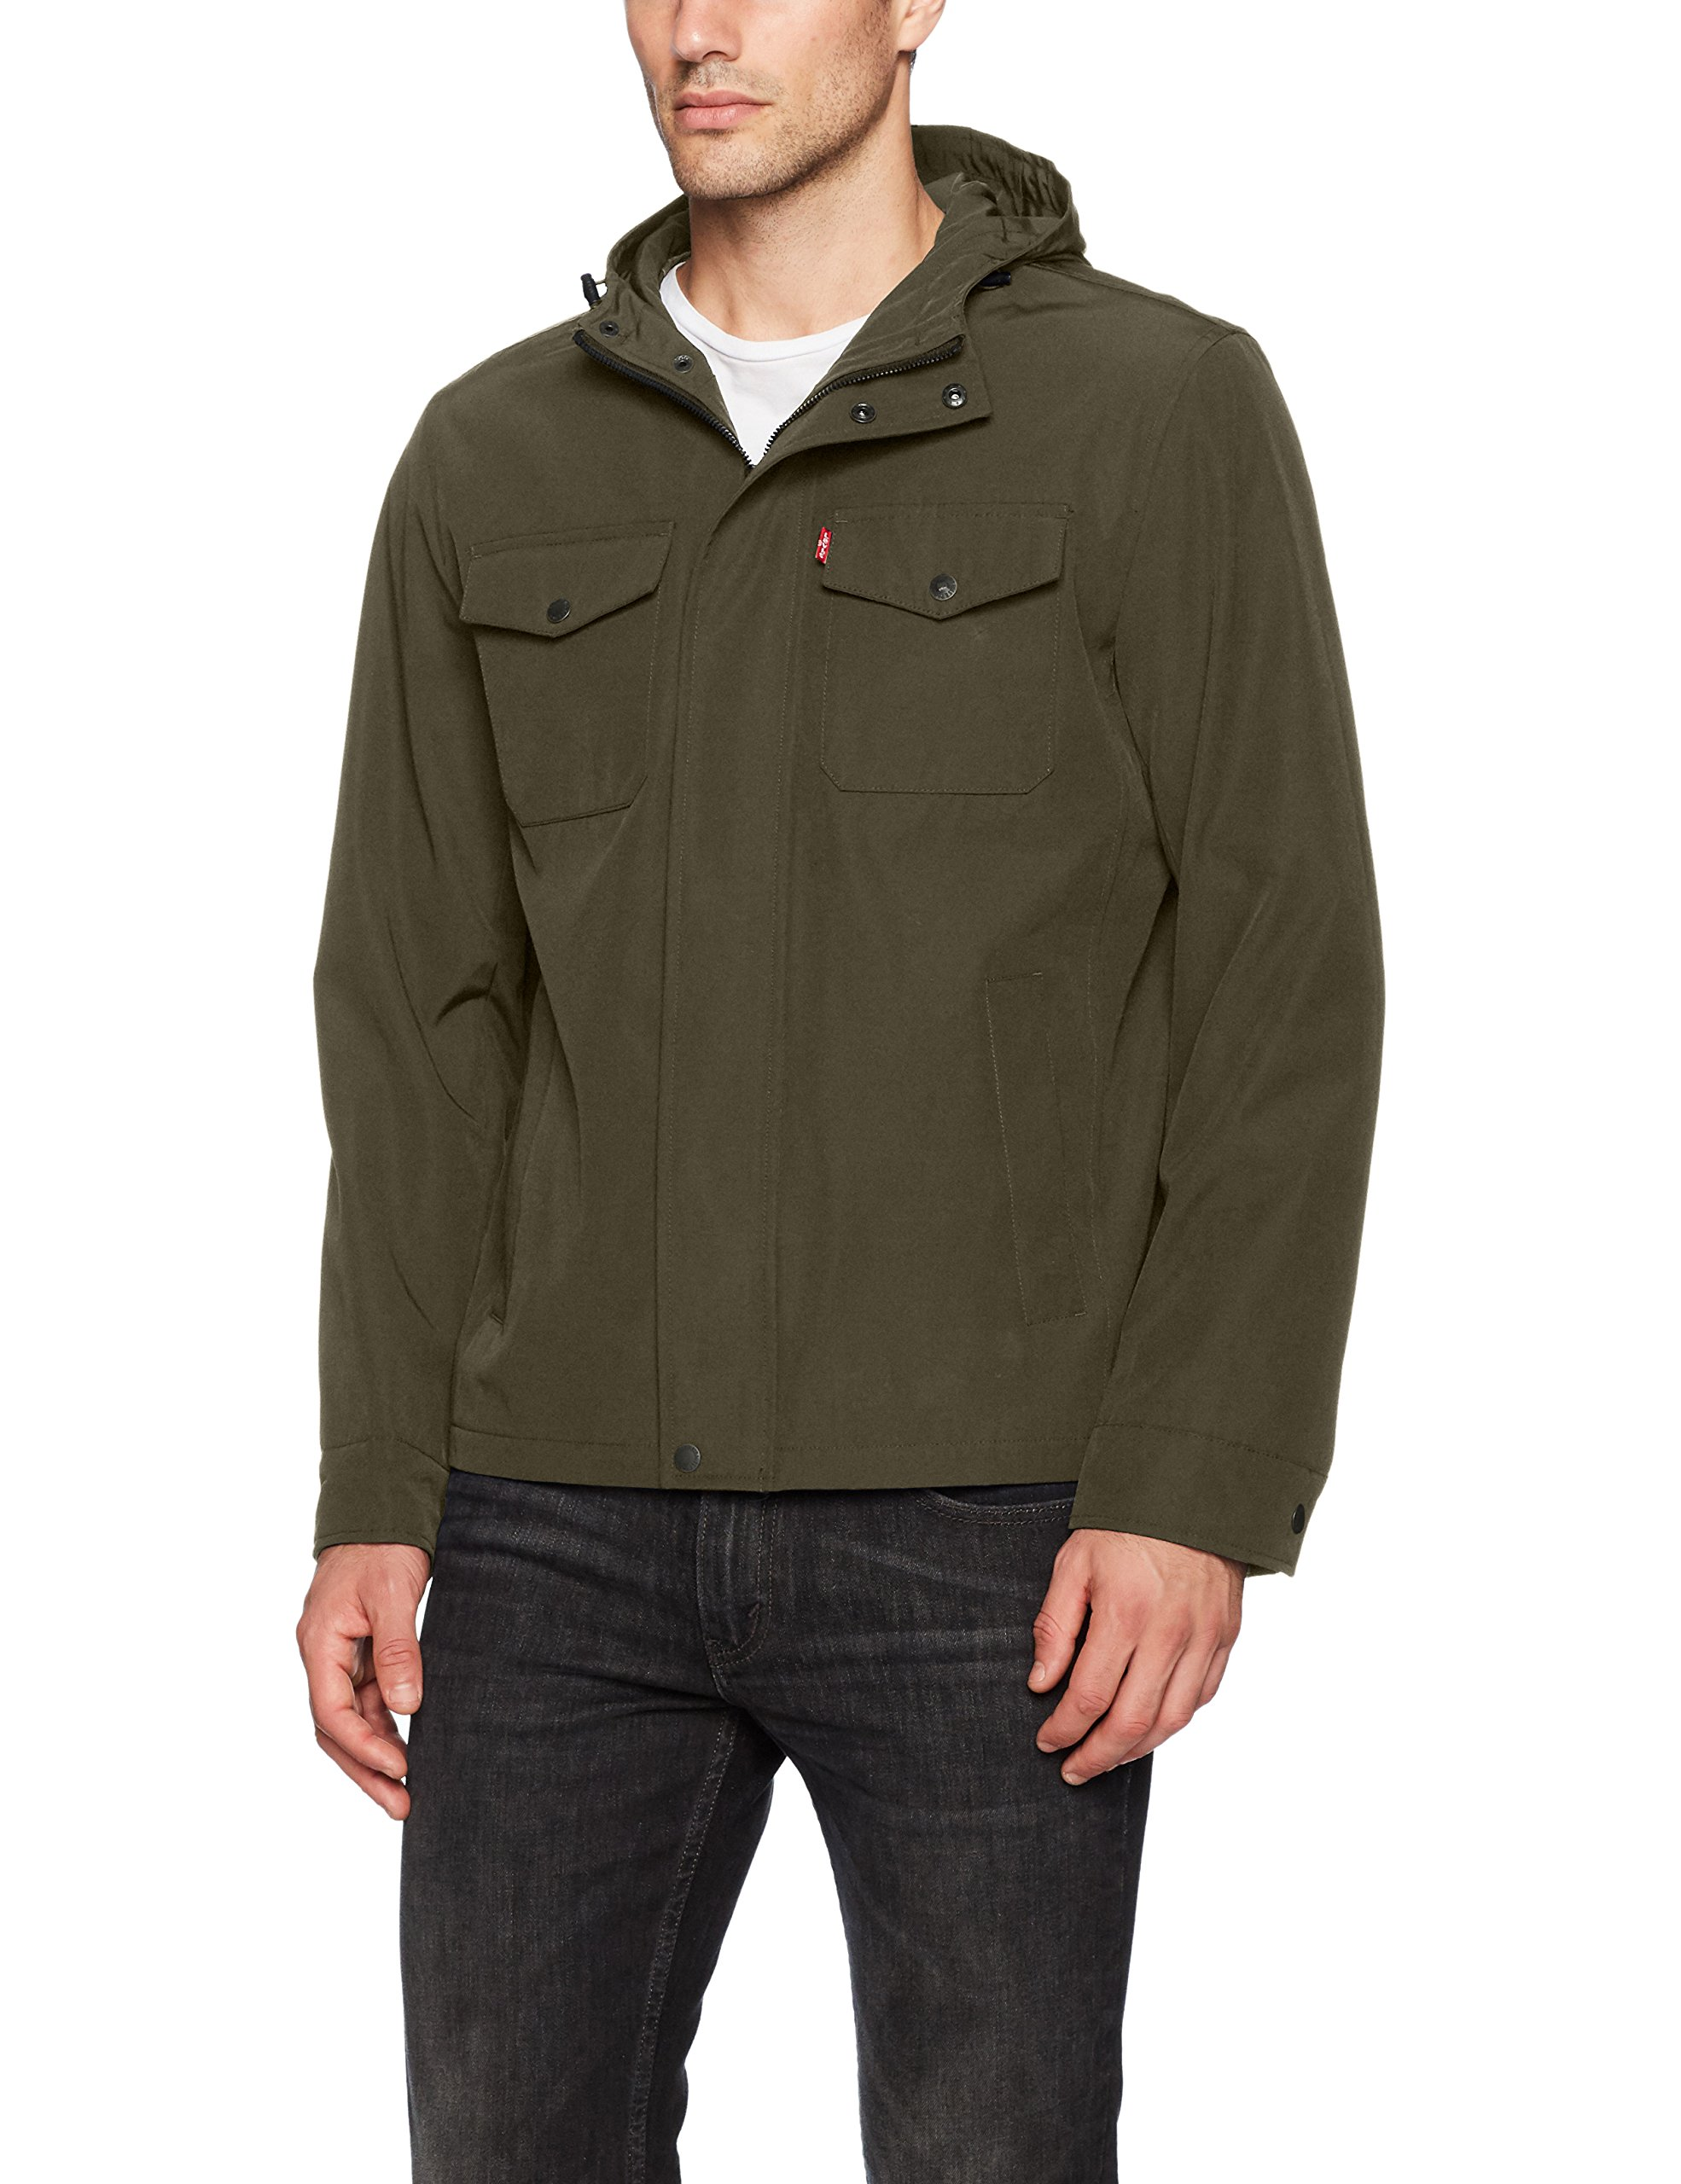 Levi's Men's Arctic Cloth Hooded Rain Slicker Jacket, Olive, Medium by Levi's